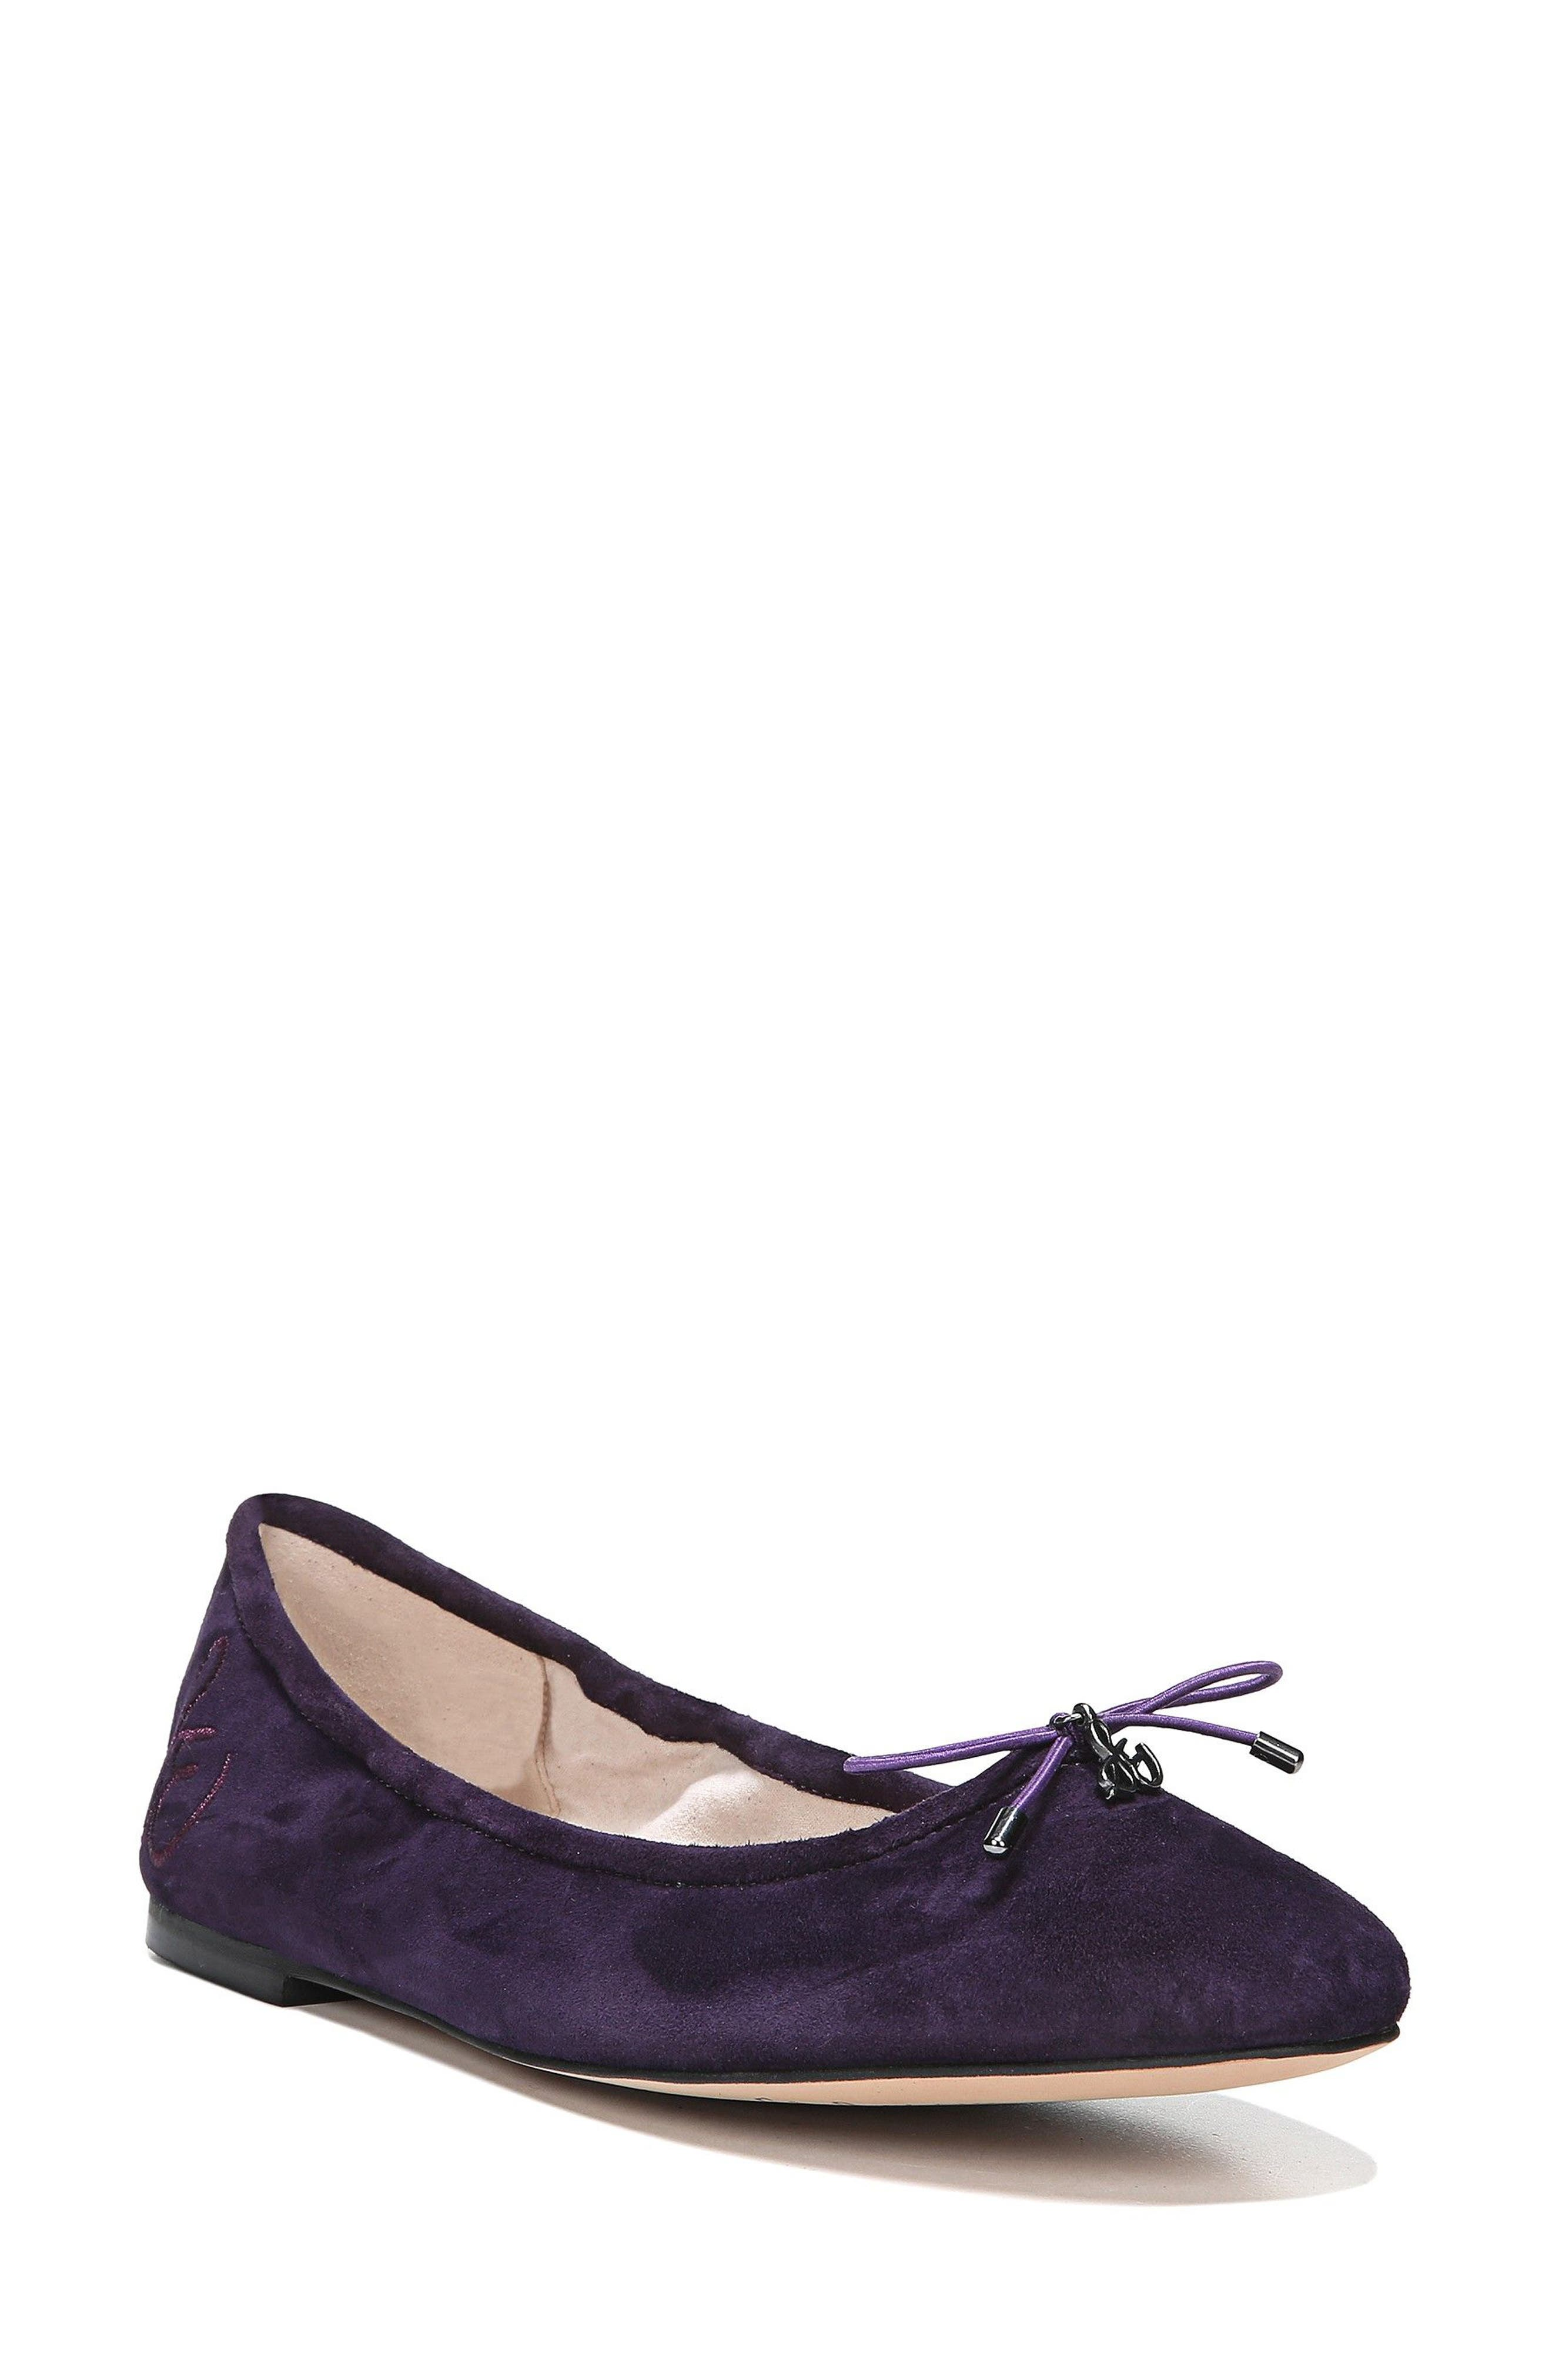 Felicia Flat,                         Main,                         color, Blackberry Suede